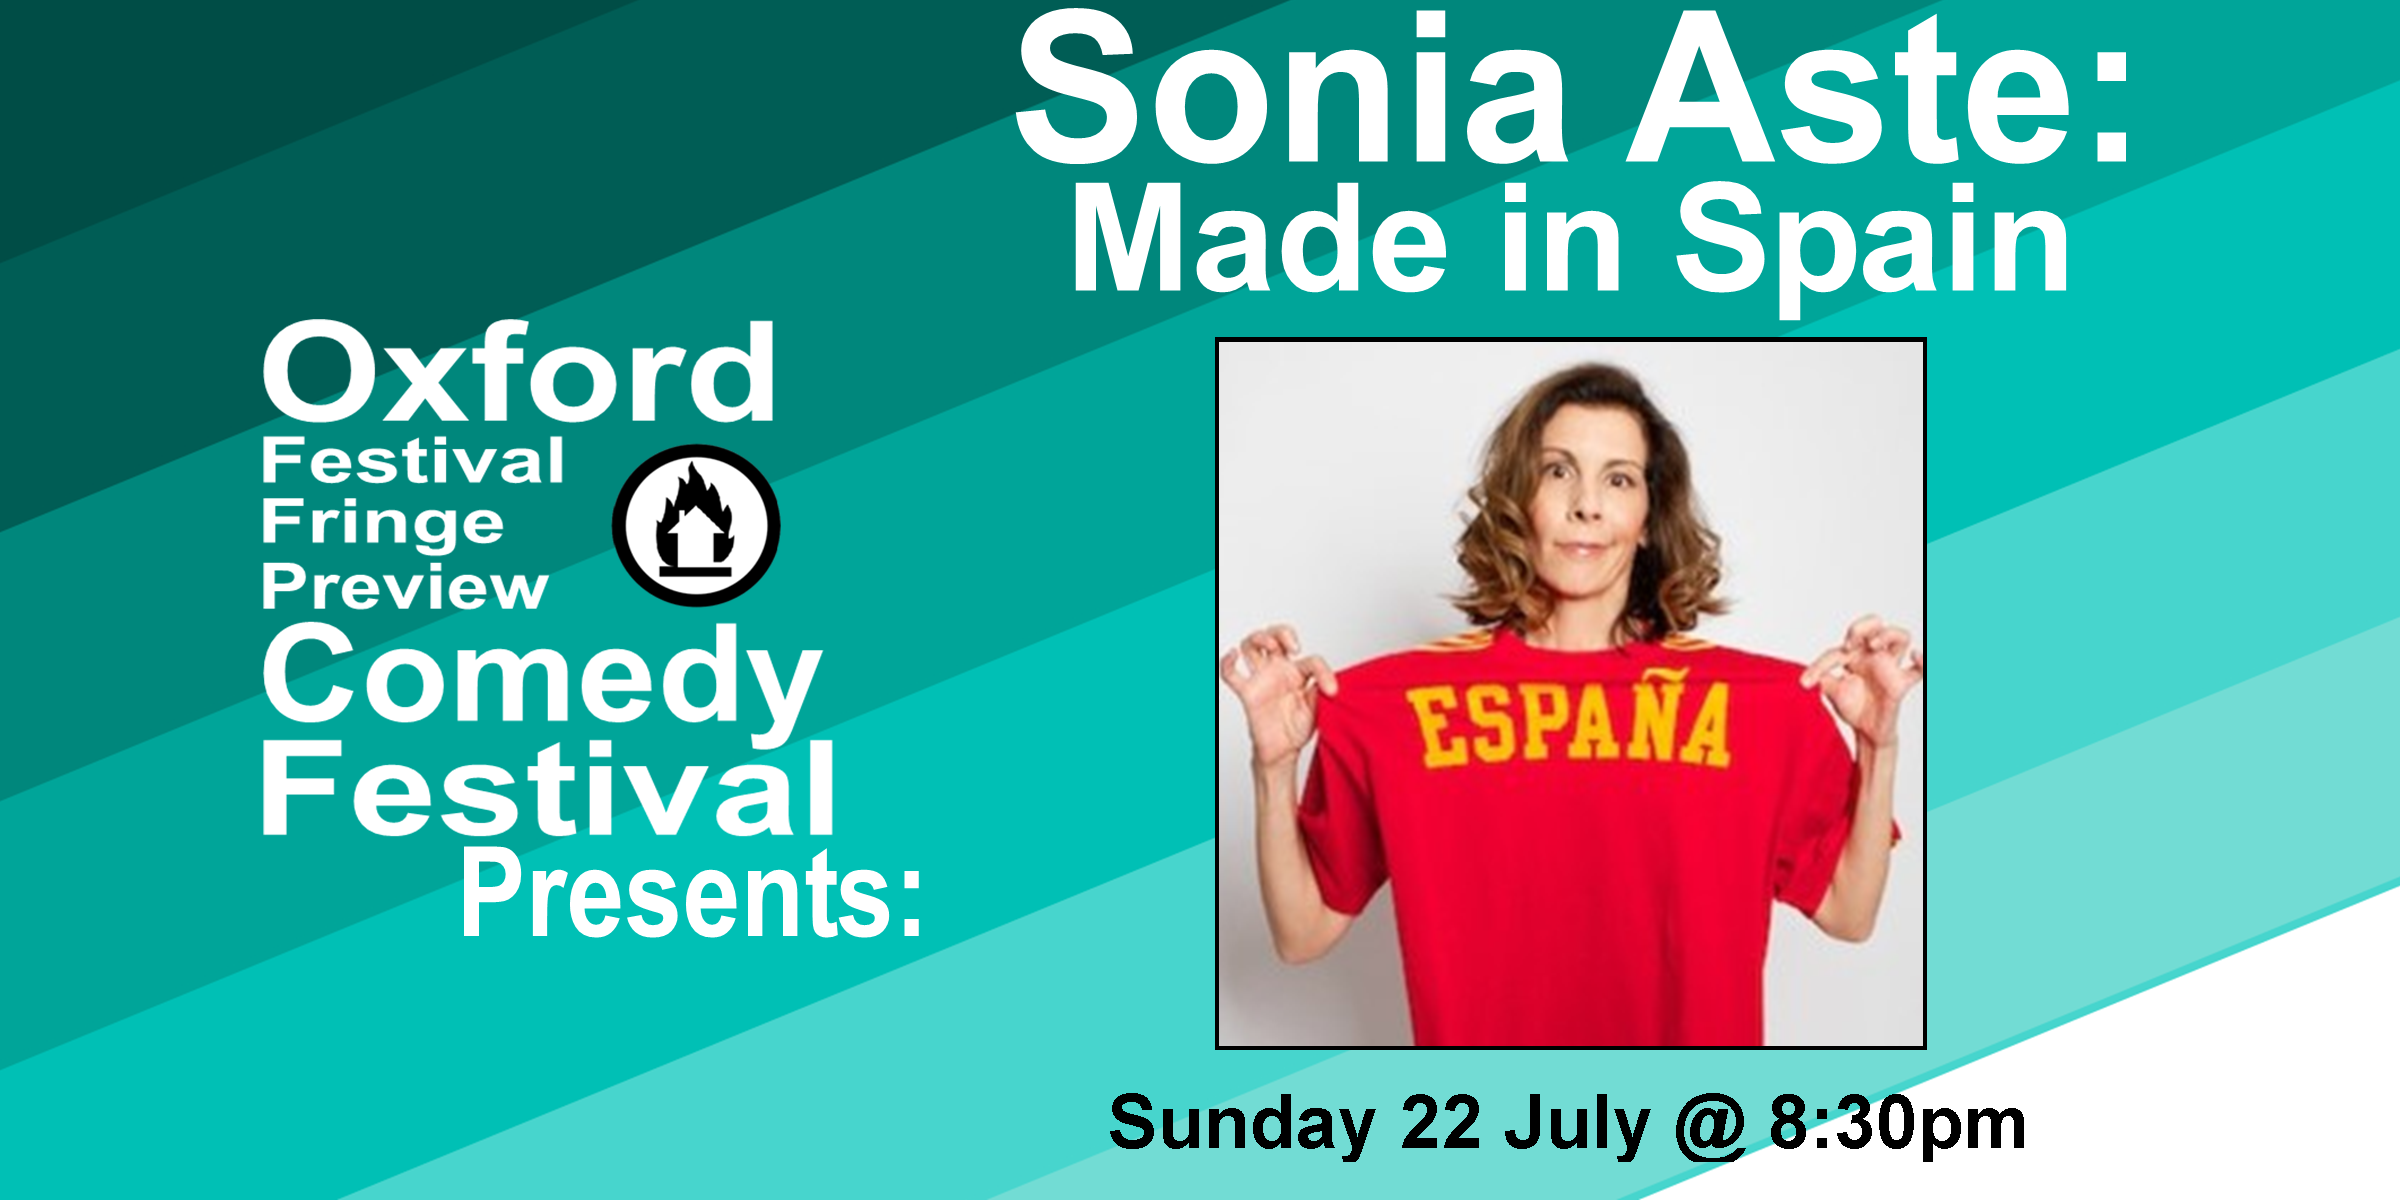 "Sonia Aste is a Spaniard living in the UK who insists it's not all fiesta and siesta! We get miserable too! But nobody's listening. Using fans, football, folklore and family, this is an uplifting, hilarious show about British/Spanish connections. Yes it's about cultural differences, but more importantly, it's about how we're all connected through life, love and laughter. Brexit or no Brexit. If you've been to Spain (or have yet to go) don't miss this ""sunny"" and very funny journey. Foot stomping laughter! Olé! Winner: TMI Contest Divisional 2017. As heard on BBC Radio and Soho Radio.  Doors at 8pm/Show at 8:30  60 minutes   Get Your Tickets Here!"